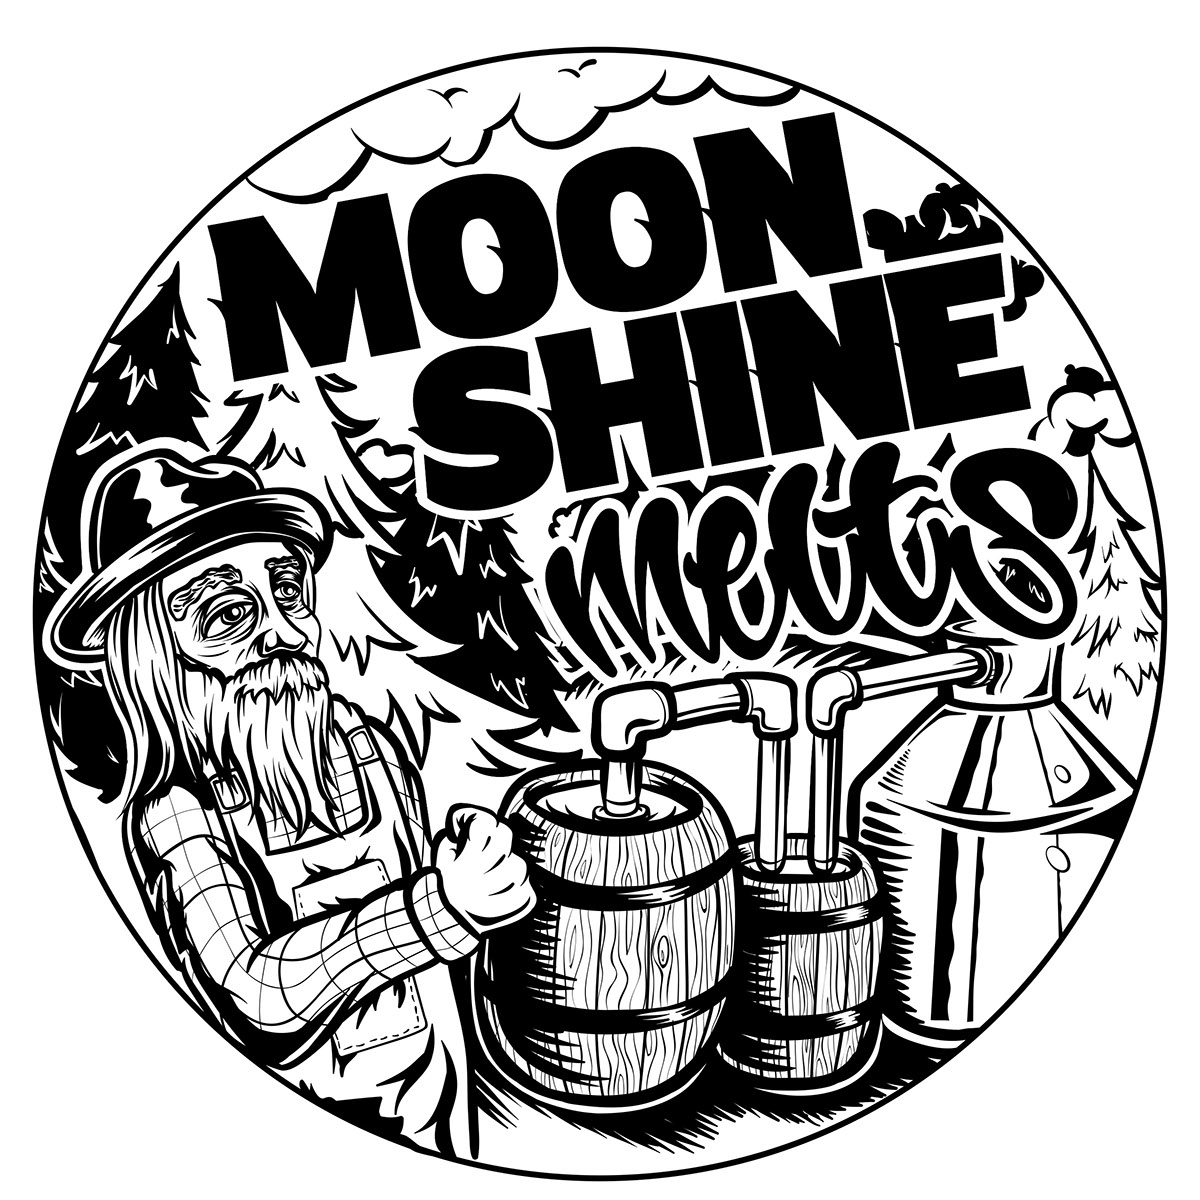 Moonshine Still Drawing At Free For Personal Use Diagram Related Keywords Suggestions 1200x1200 Melts Graphic On Behance